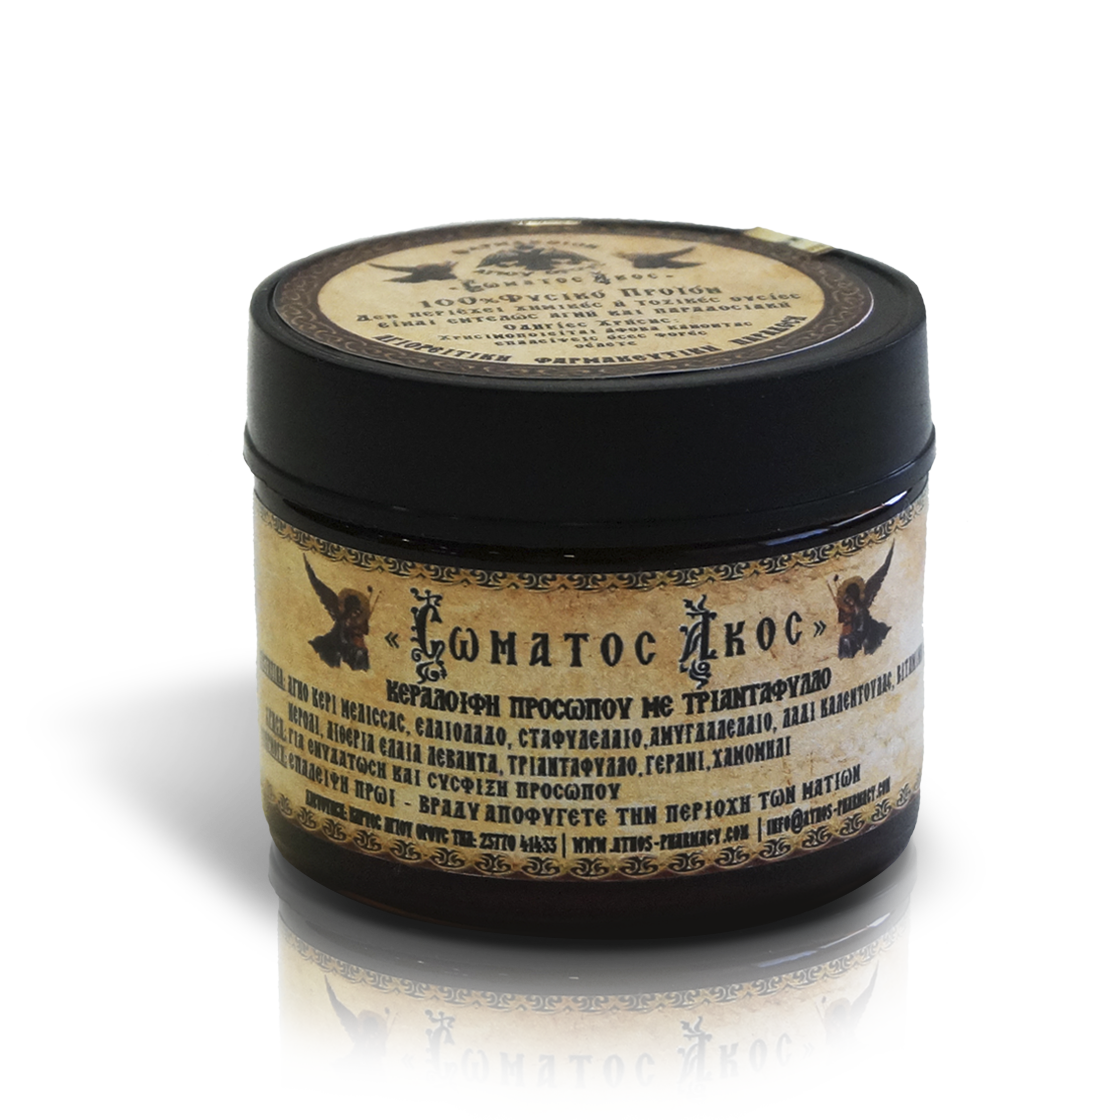 100% natural product, this wax-cream does not contain any chemical or toxic substances. Provides to the dry skin a reconstructive treatment, while its rich composition hydrates and leaves your skin feeling silky smooth. It is available from the Mount Athos product exhibition. / 100 % φυσικό προϊόν η κεραλοιφή αυτή δεν περιέχει χημικές ή τοξικές ουσίες. Παρέχει στην ξερή επιδερμίδα μια θεραπεία ανάπλασης και ενυδάτωσης. Διατίθεται από την Έκθεση προϊόντων Αγίου Όρους.